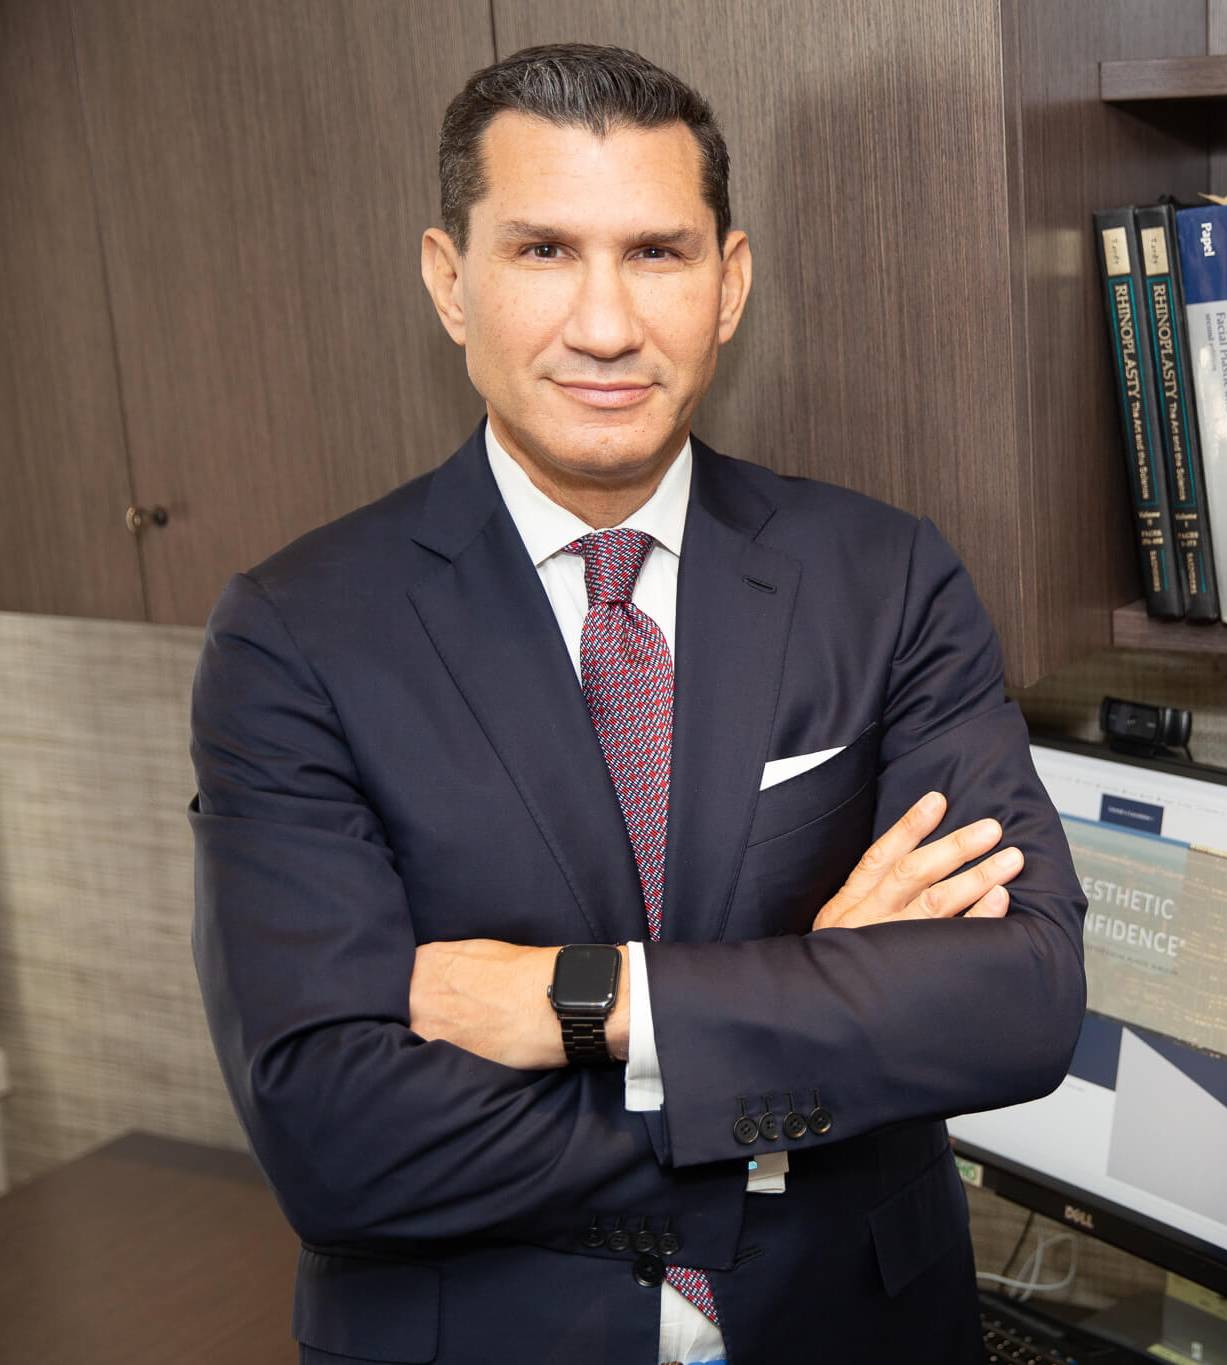 Headshot of Dr. Philip Miller, New York Facial Plastic Surgery Specialist